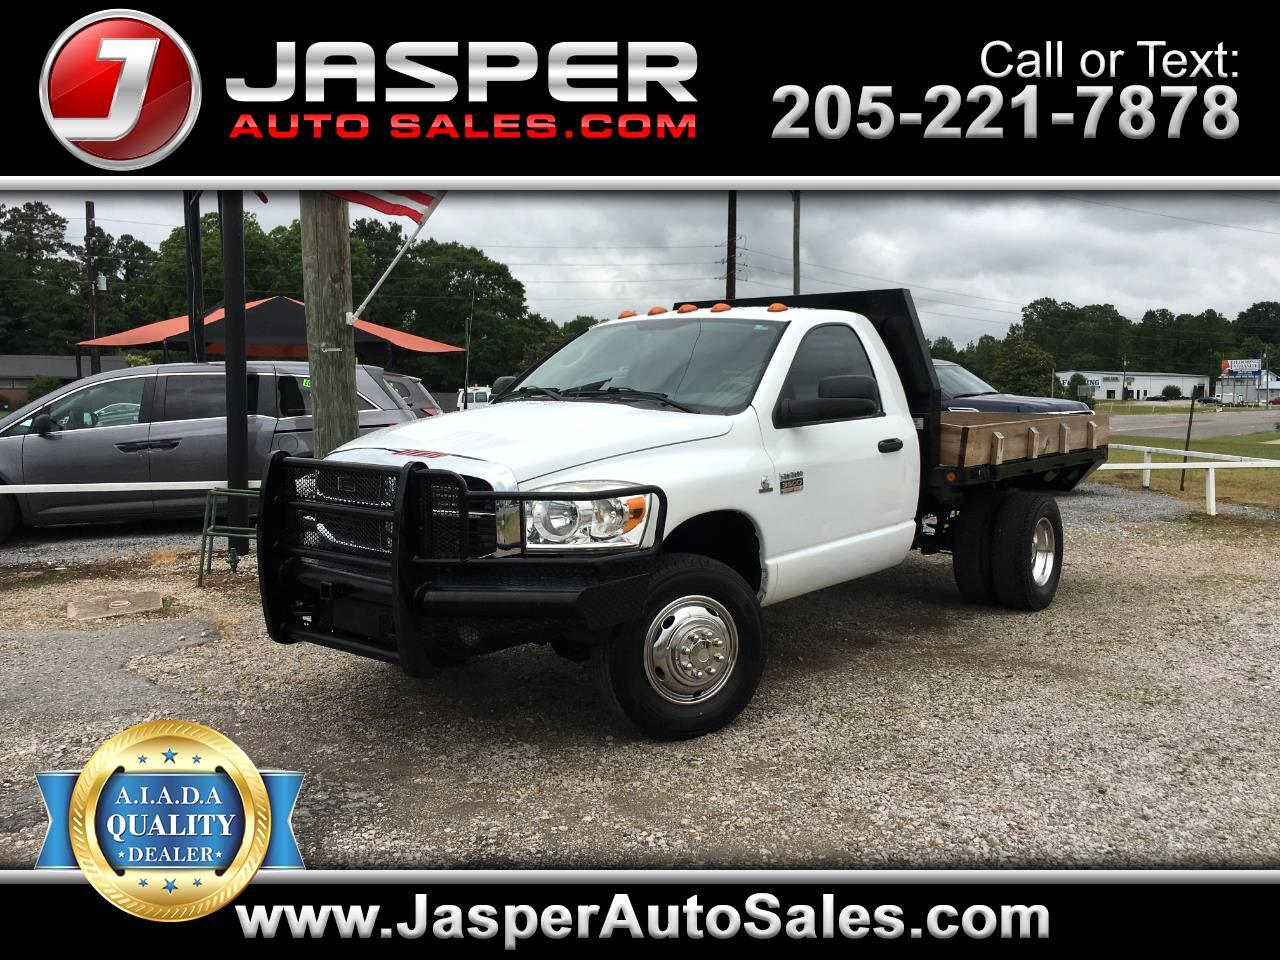 2007 Dodge Ram 3500 4X4 DIESEL DUALLY:  MANUAL TRANS